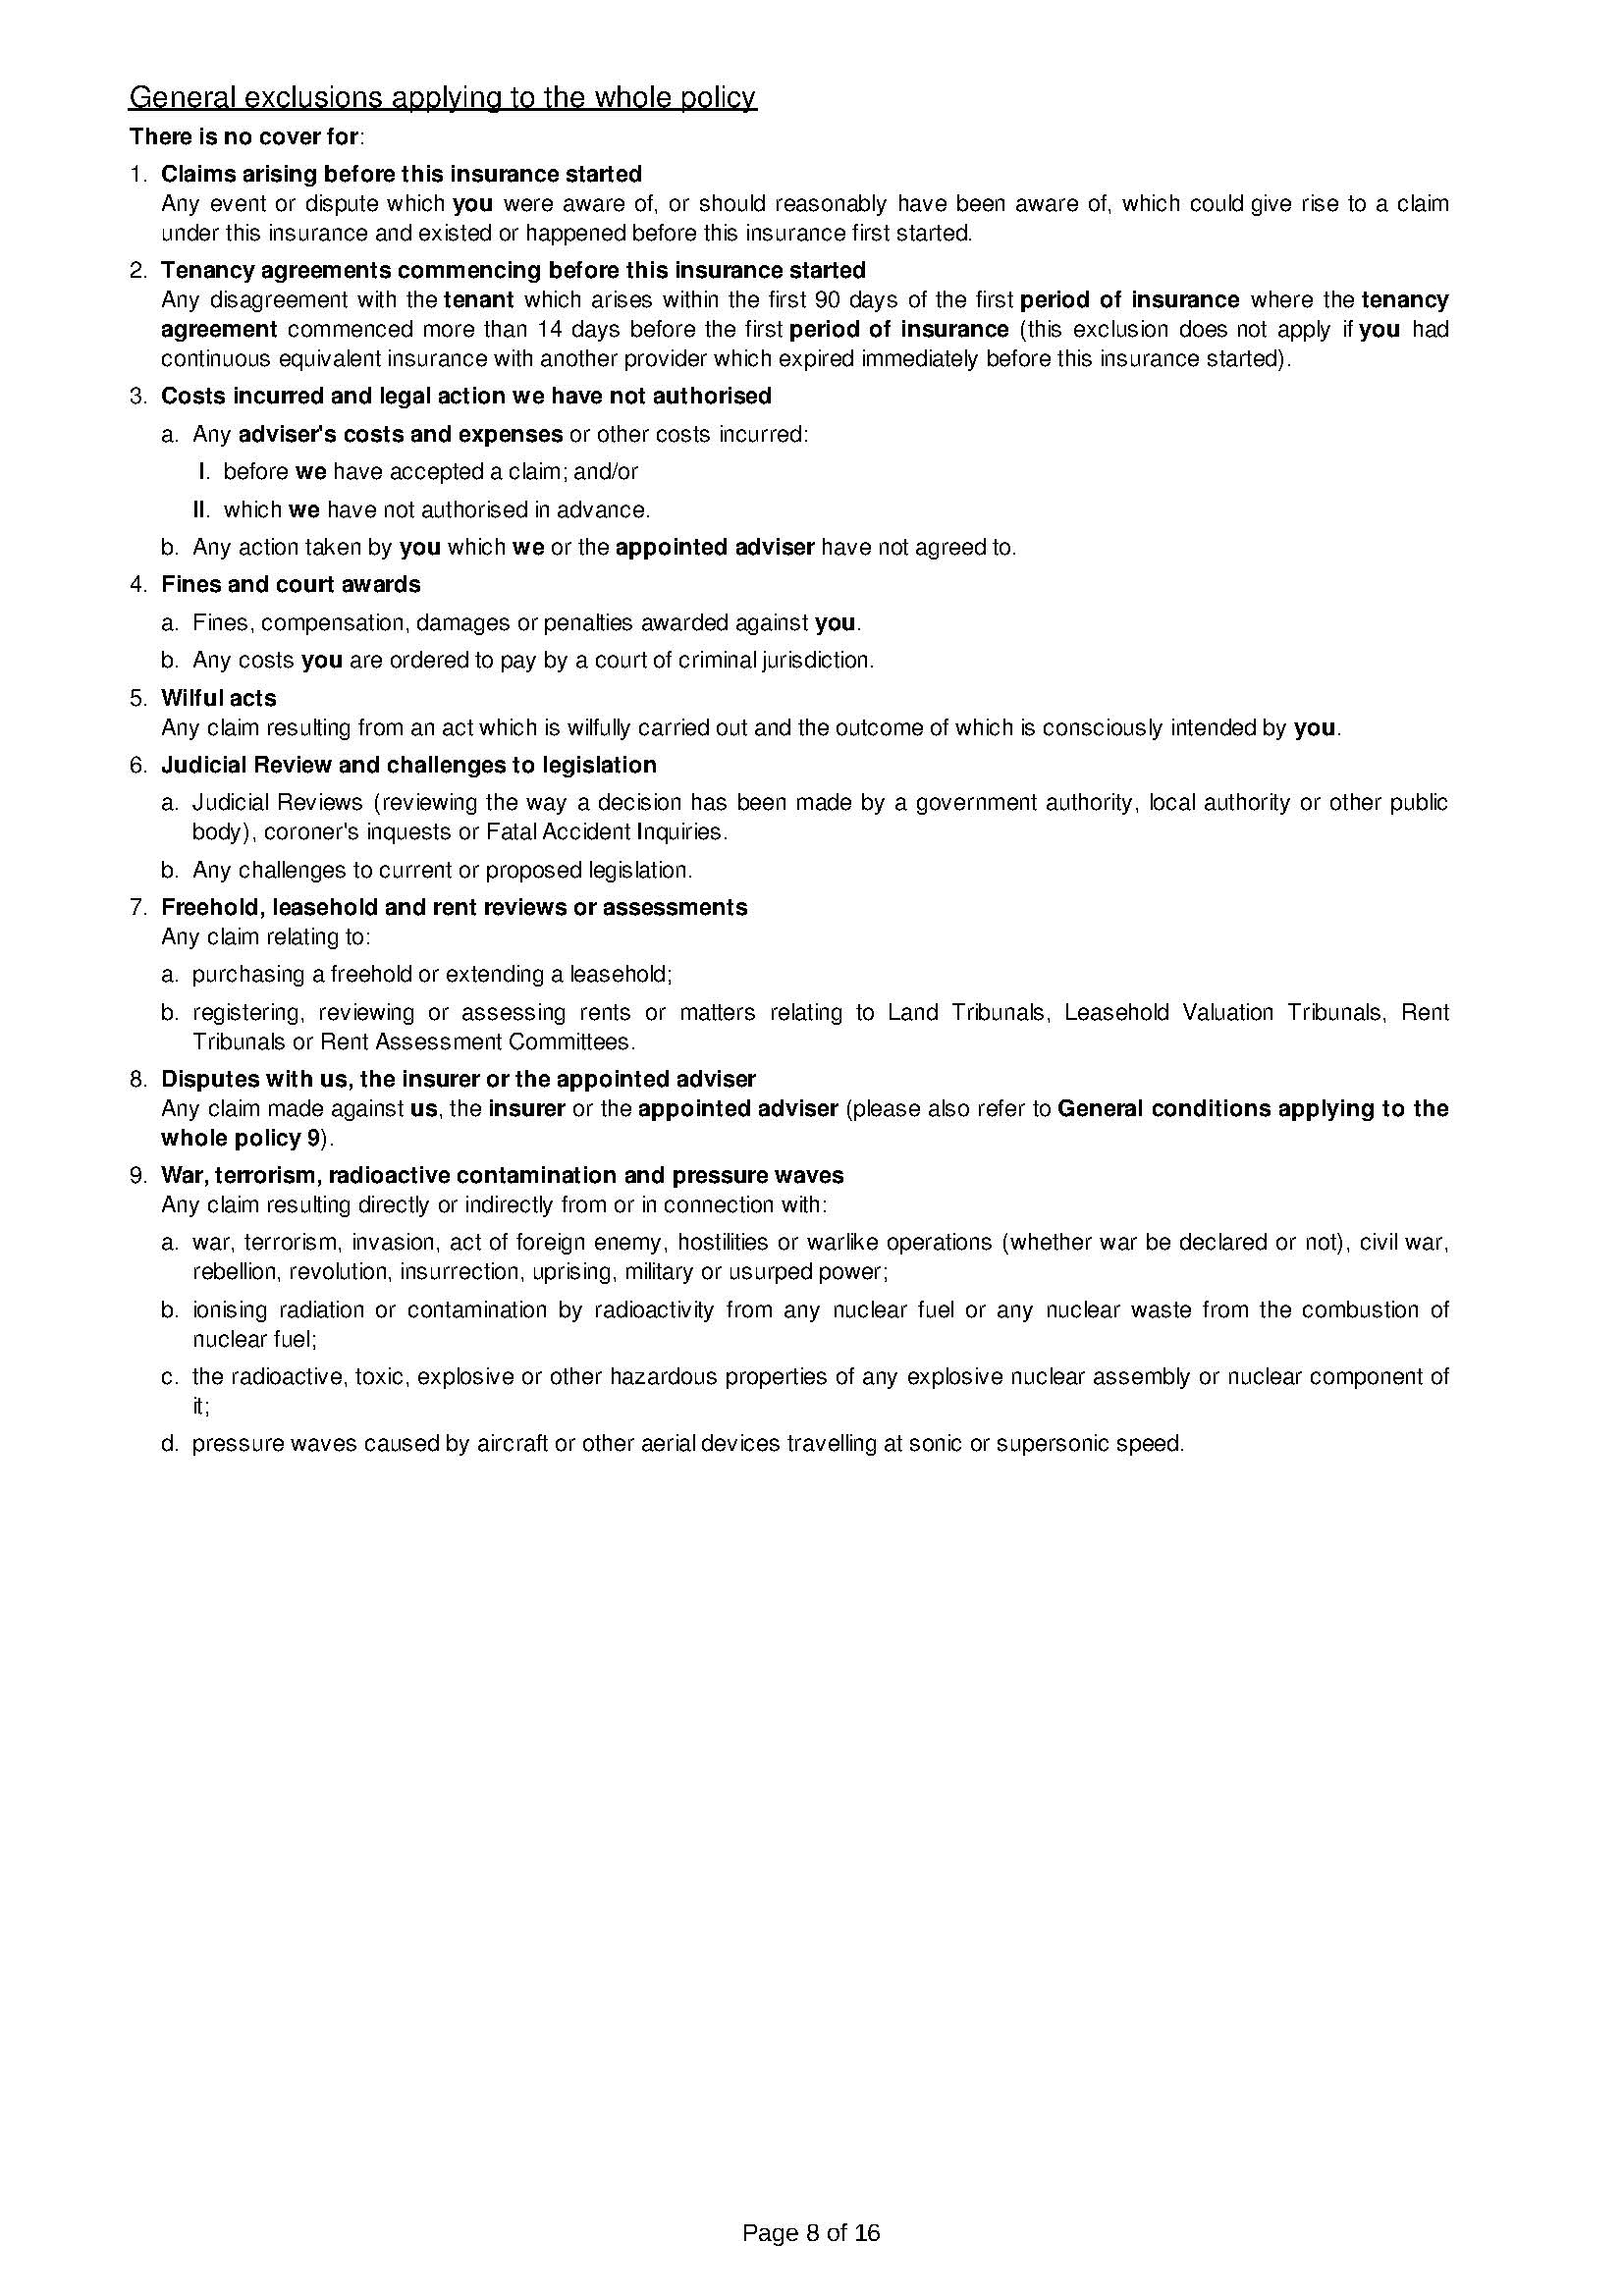 insurance_policy_02_page_08